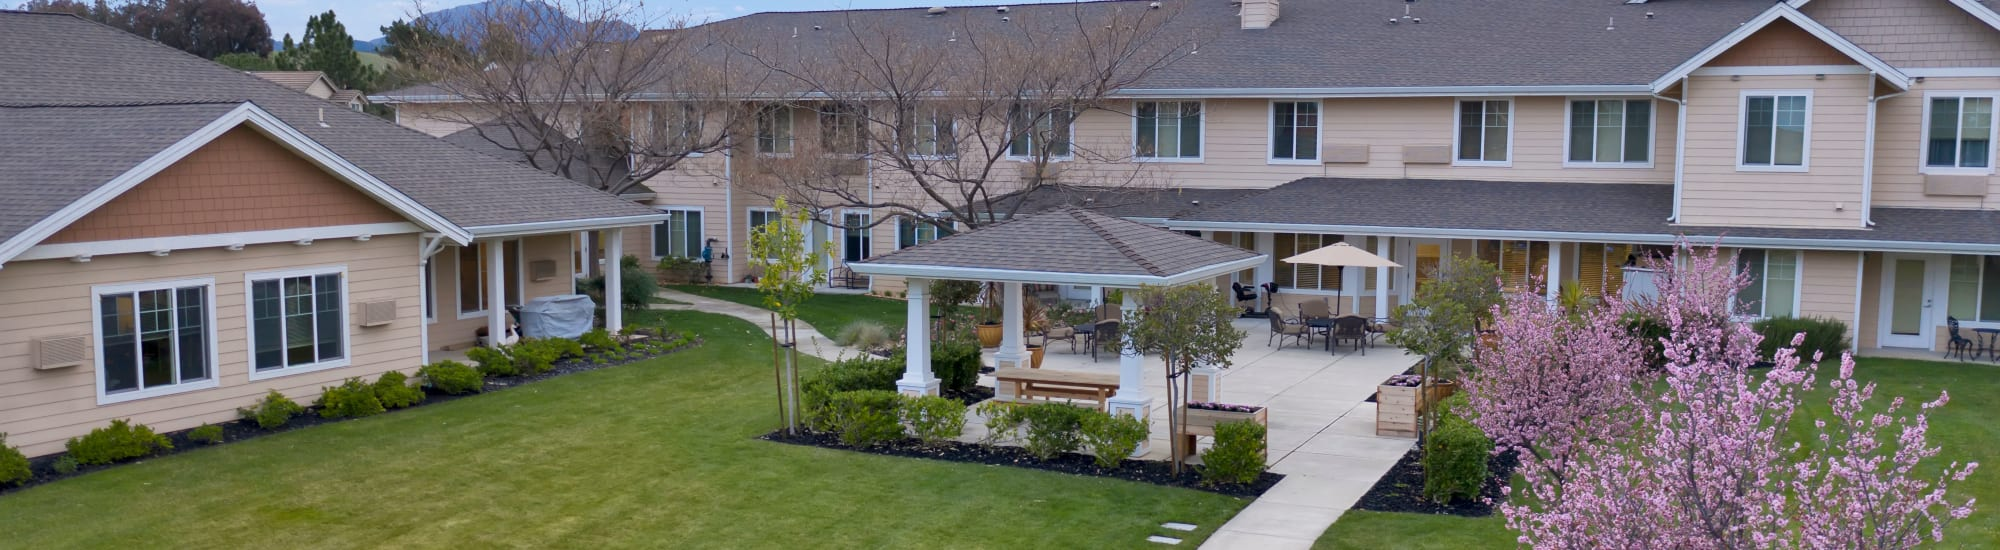 Our community at The Commons at Dallas Ranch in Antioch, California